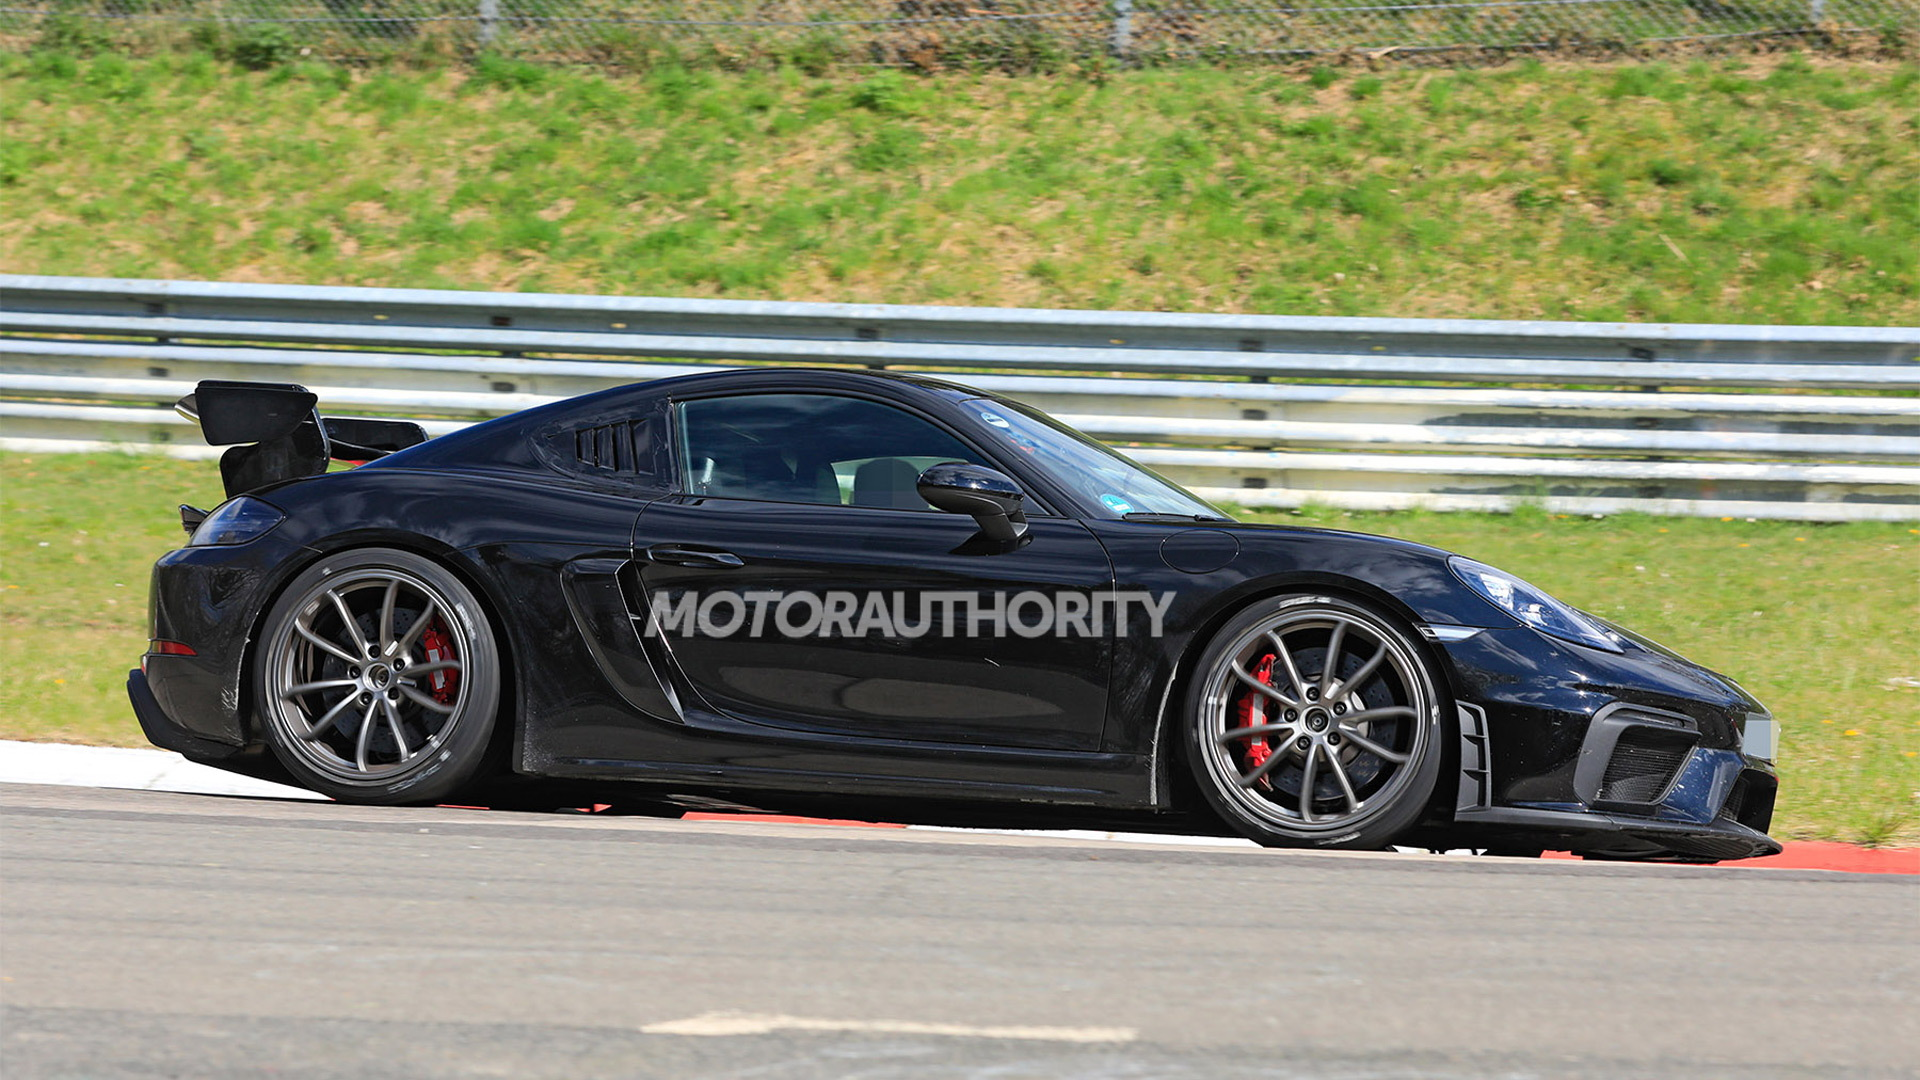 2021 Porsche 718 Cayman GT4 RS spy shots - Photo credit: S. Baldauf/SB-Medien